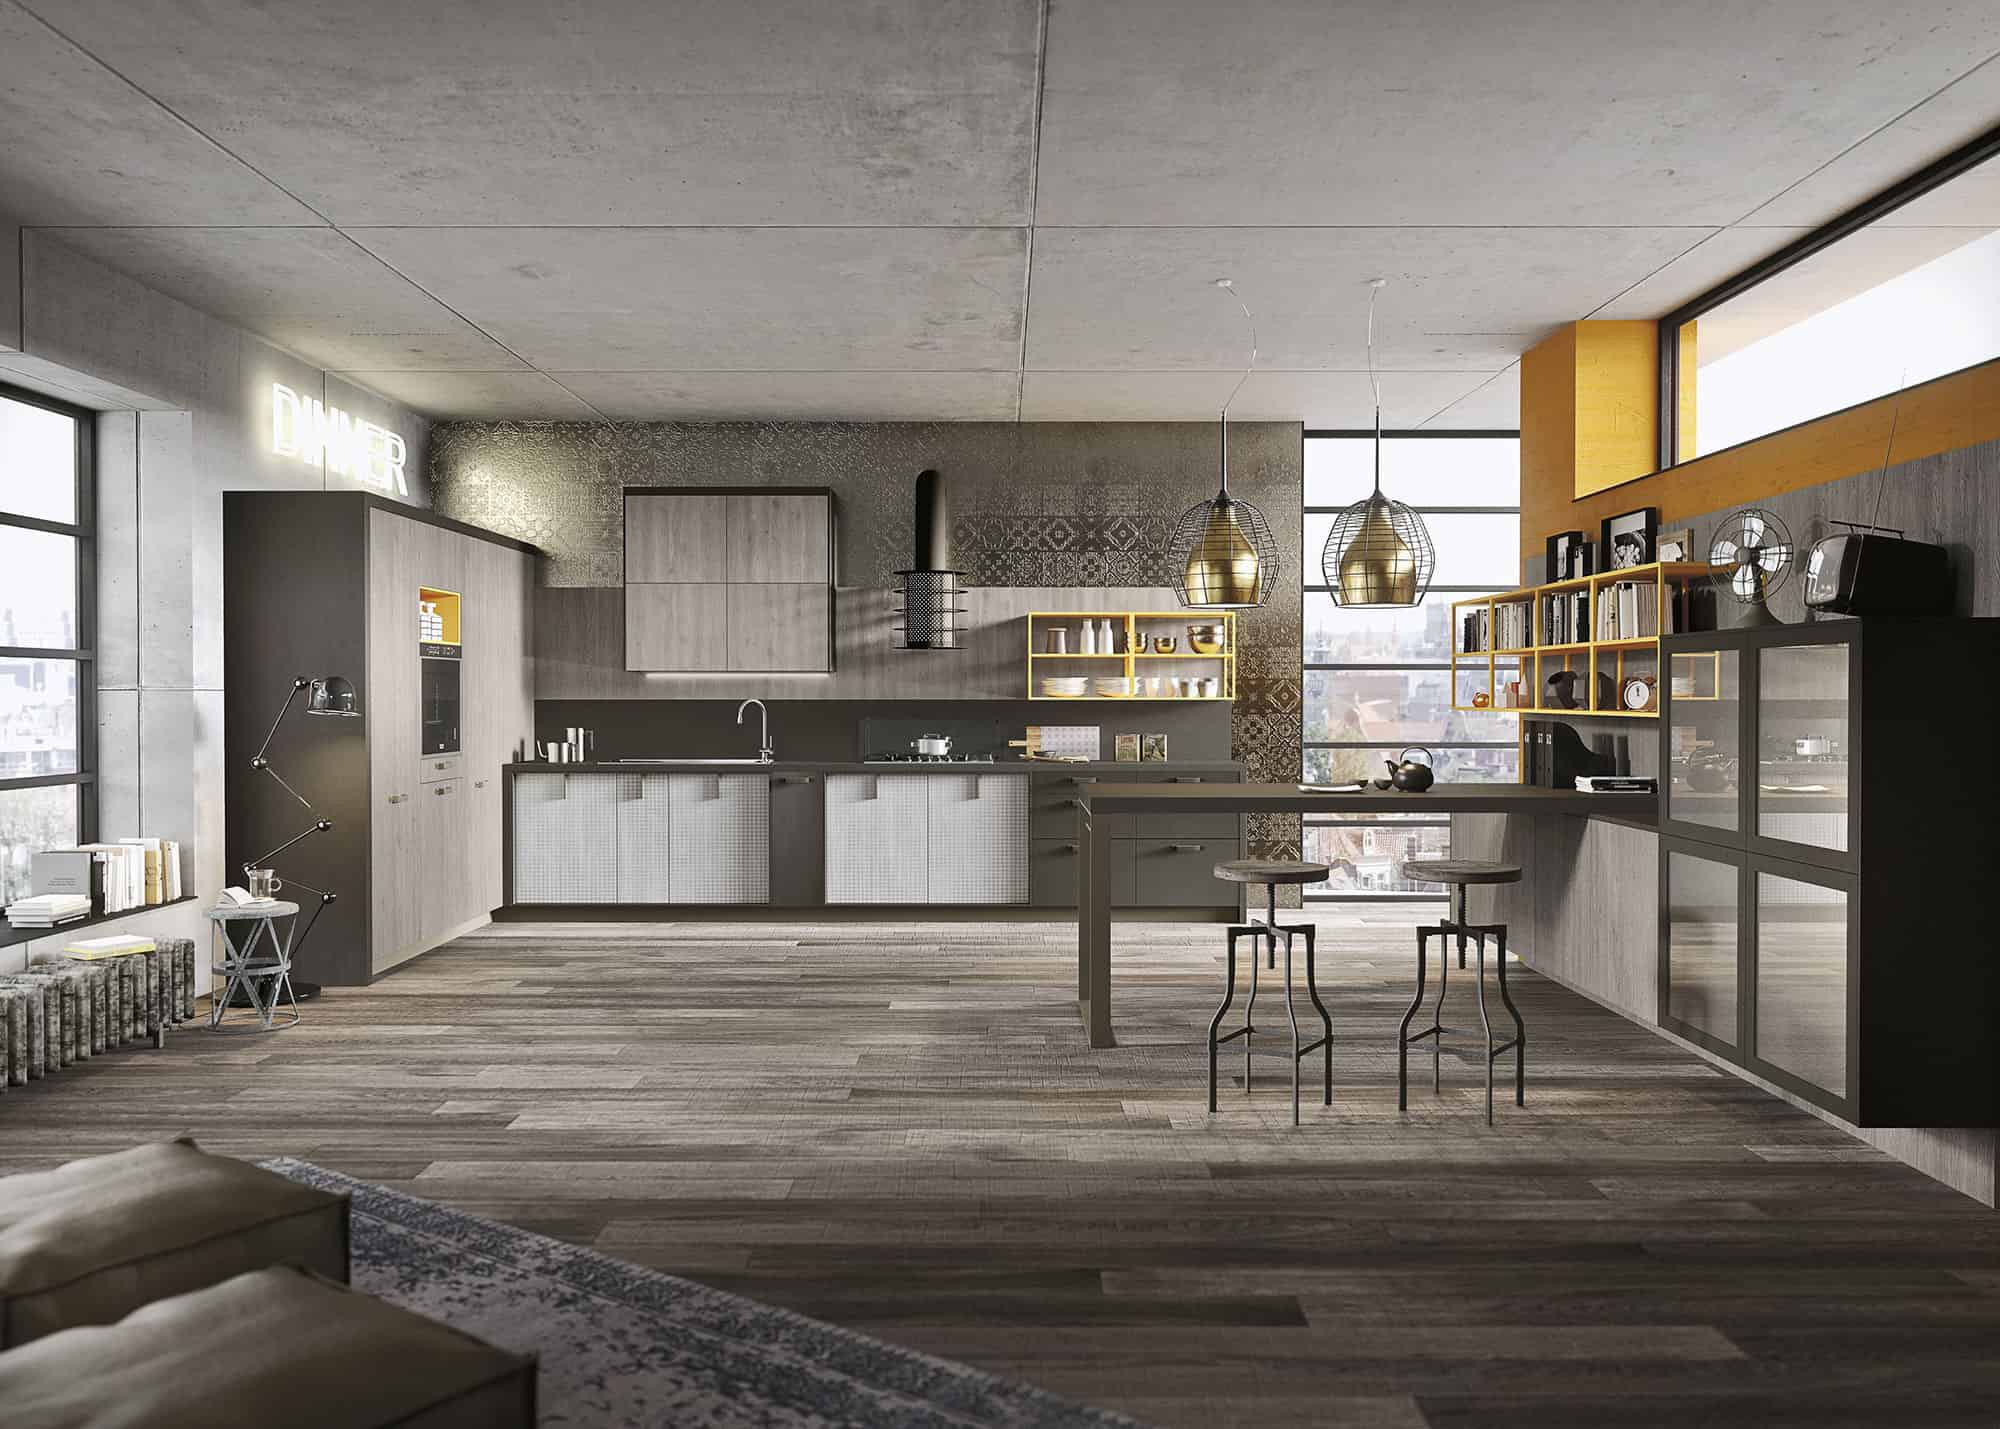 Amazing This Urban Loft Kitchen Design (above) Uses The Same Elements As The One  With The Modern Look But It Features The Weathered Looking U201cFossil Oaku201d  Melamine ...